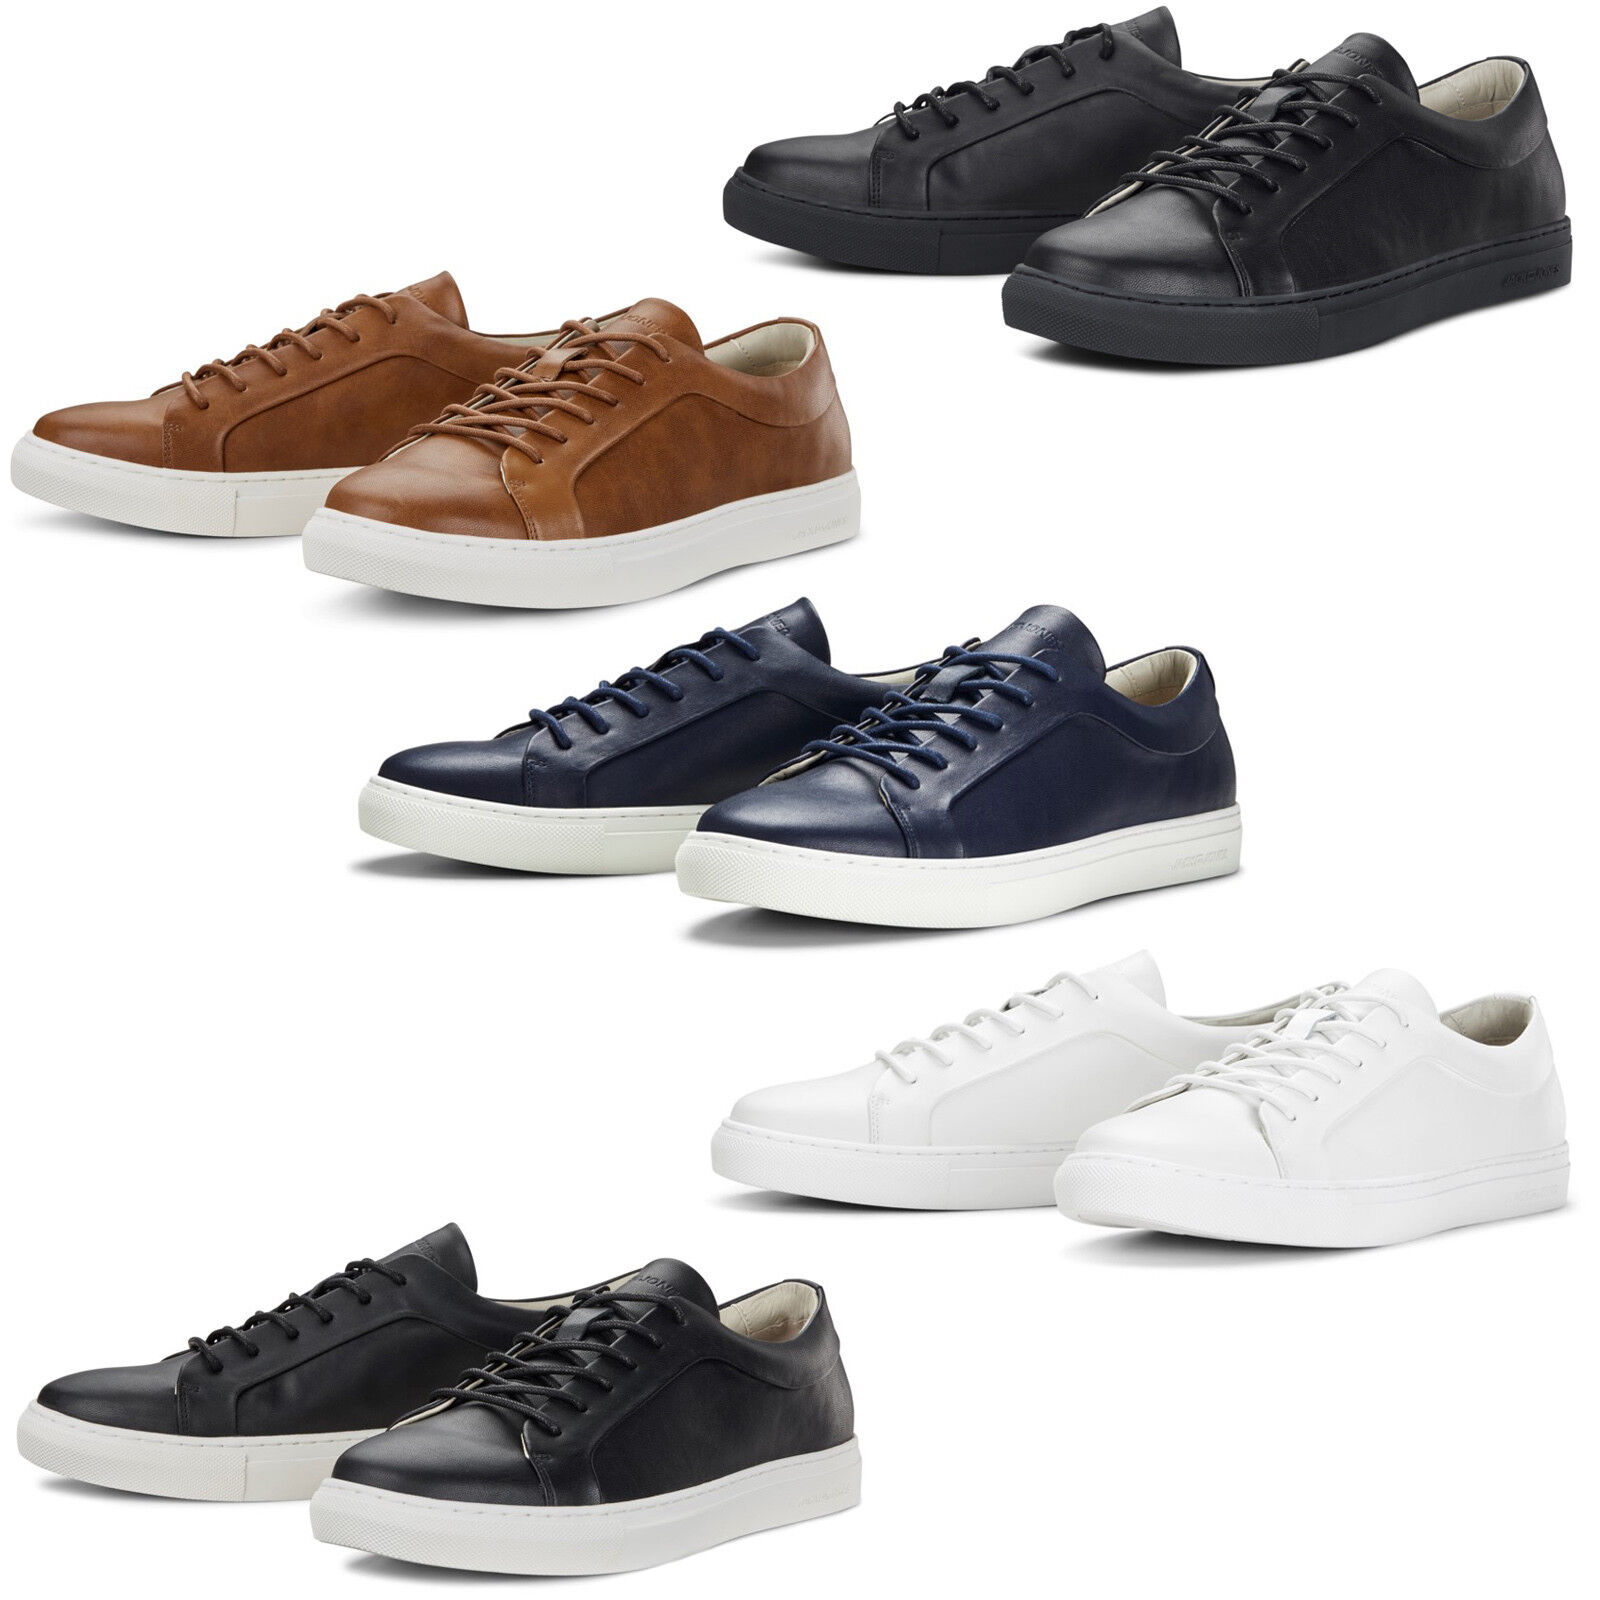 Jack & Jones Sputnik Trainers  Uomo Classic Flat Fashion Sneakers Schuhes Pumps